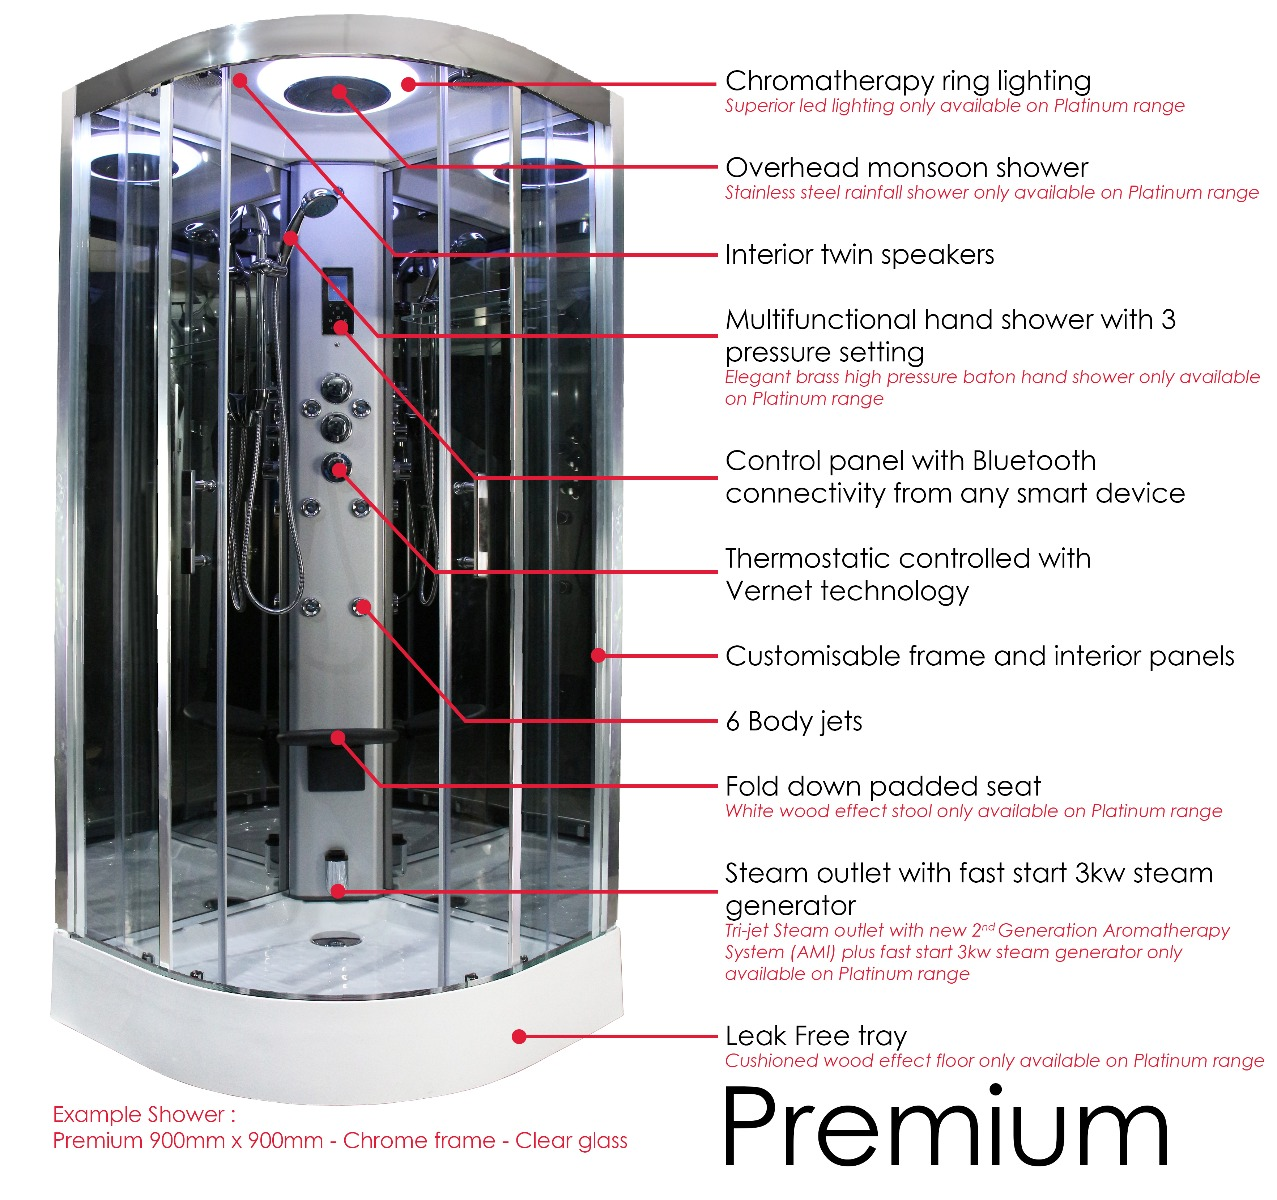 Premium Shower features